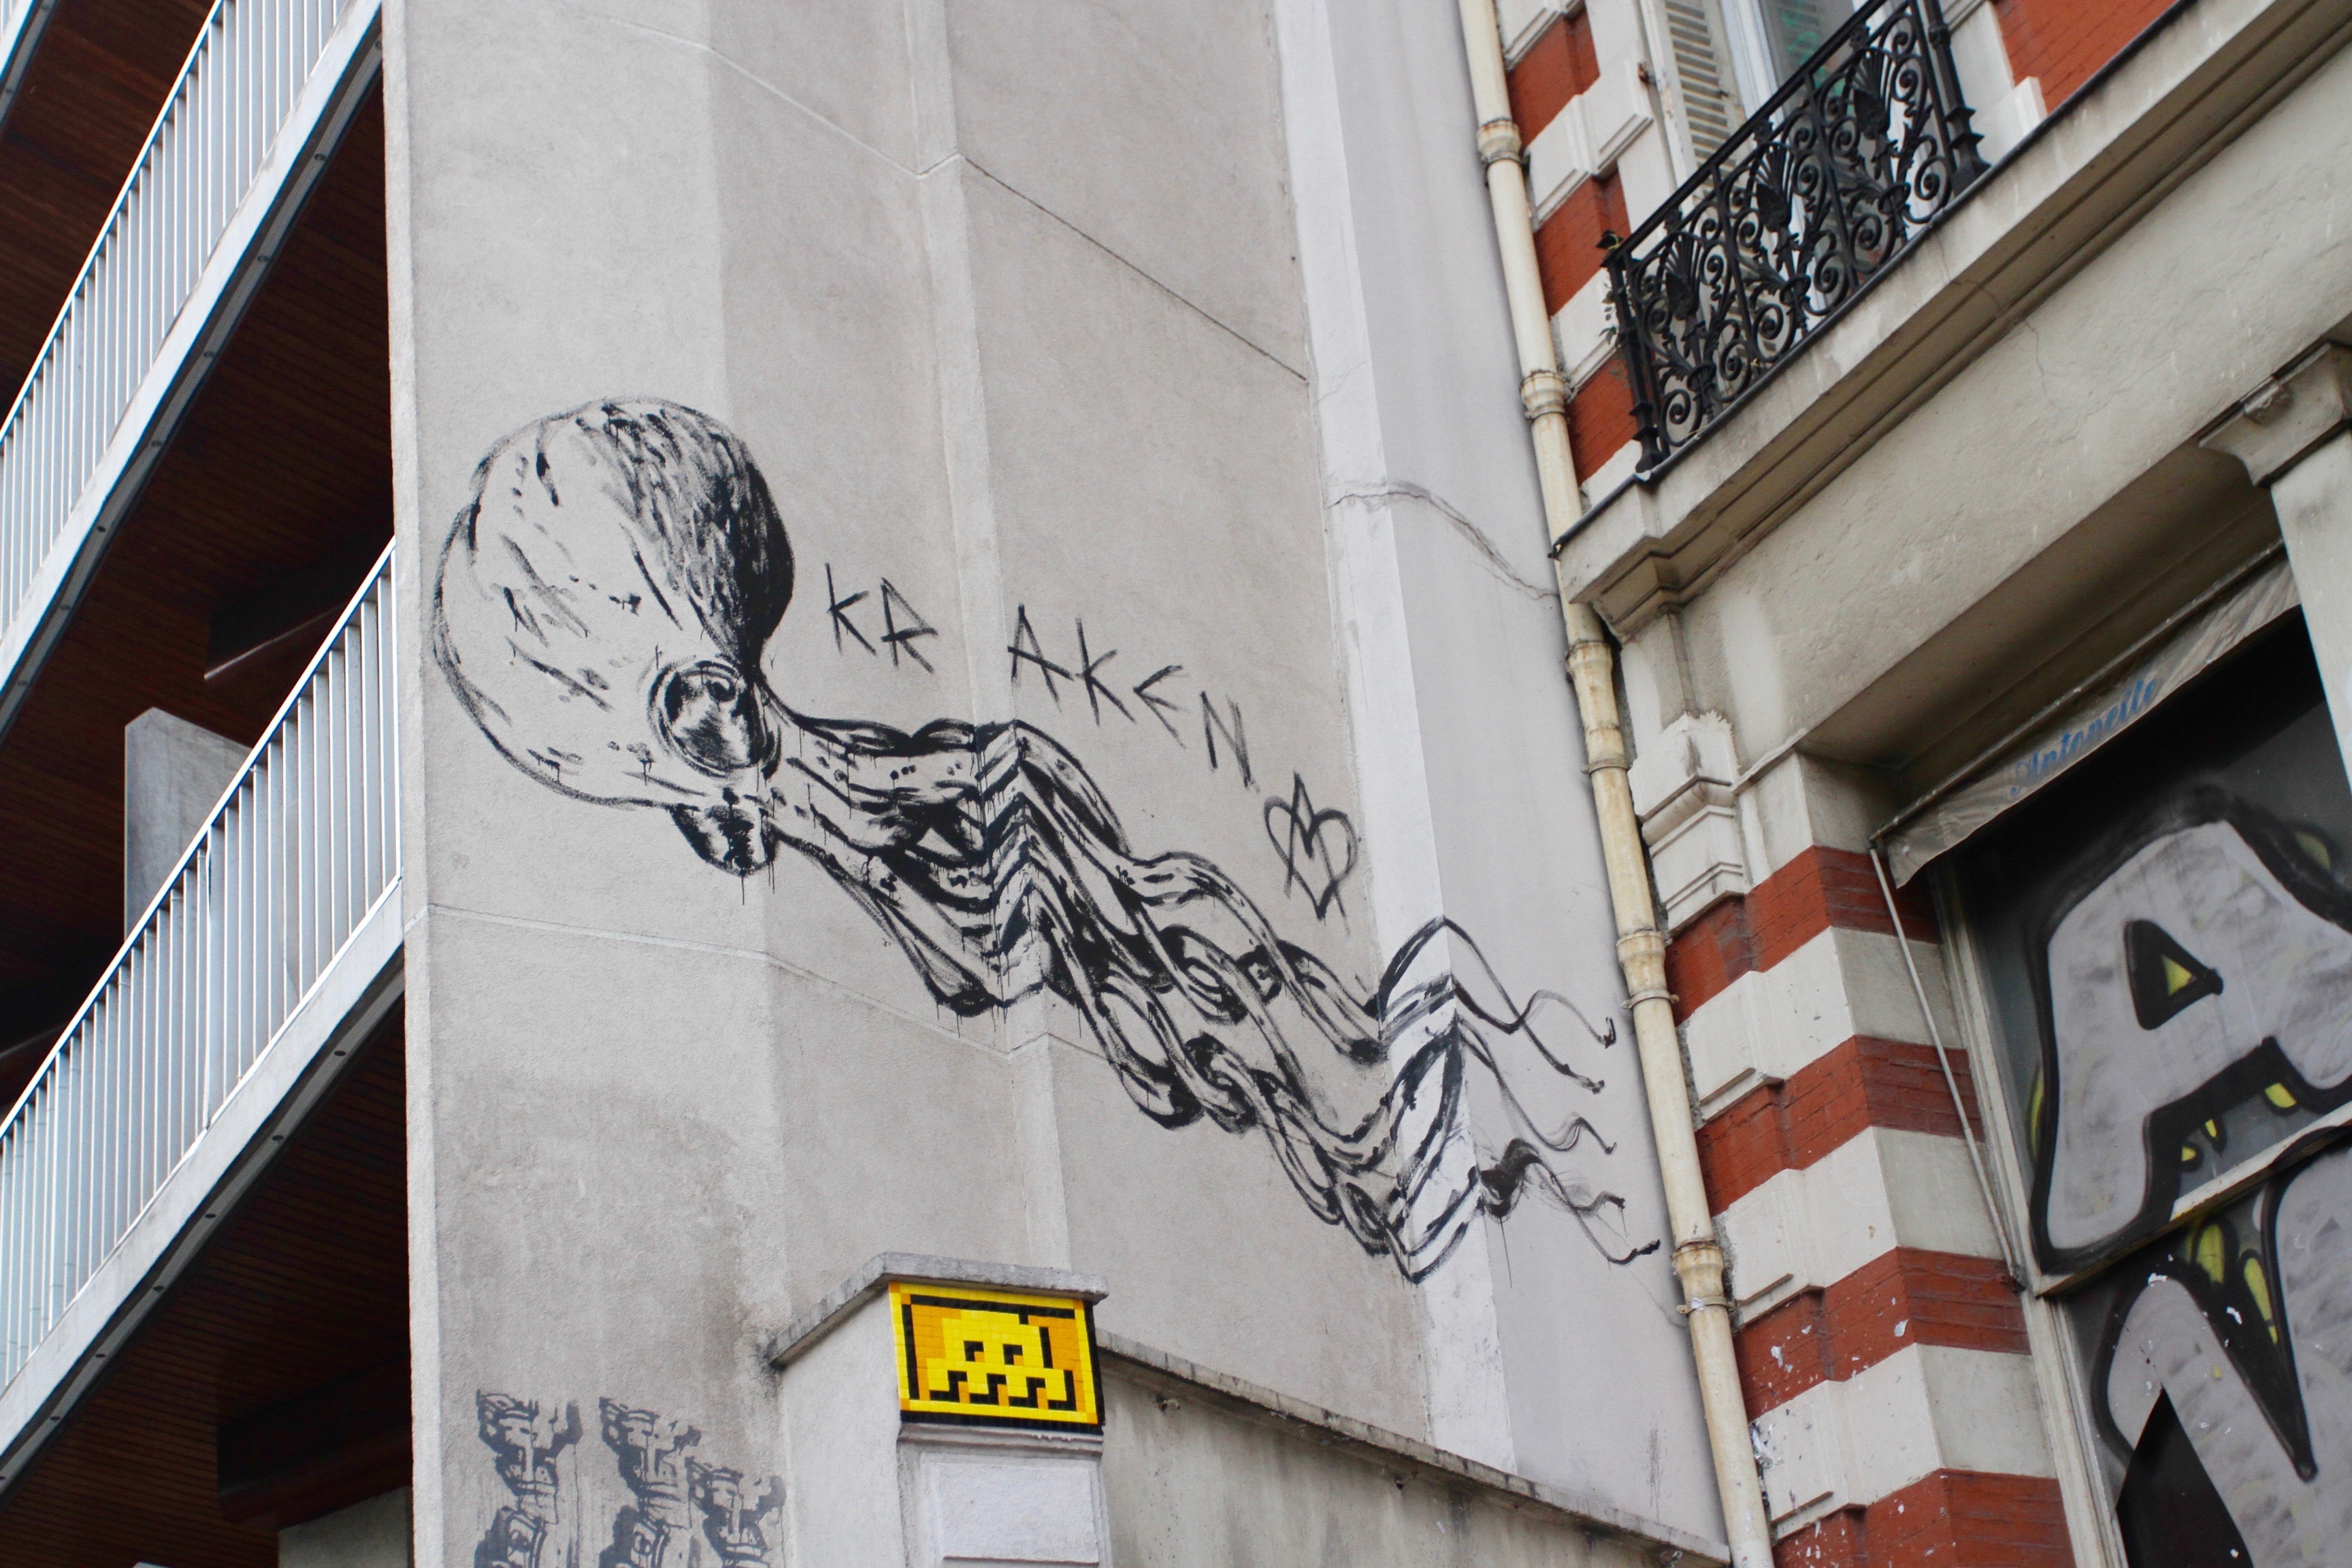 Bien connu Parisian Street Art: Beware the Kraken | notesfromcamelidcountry MU87